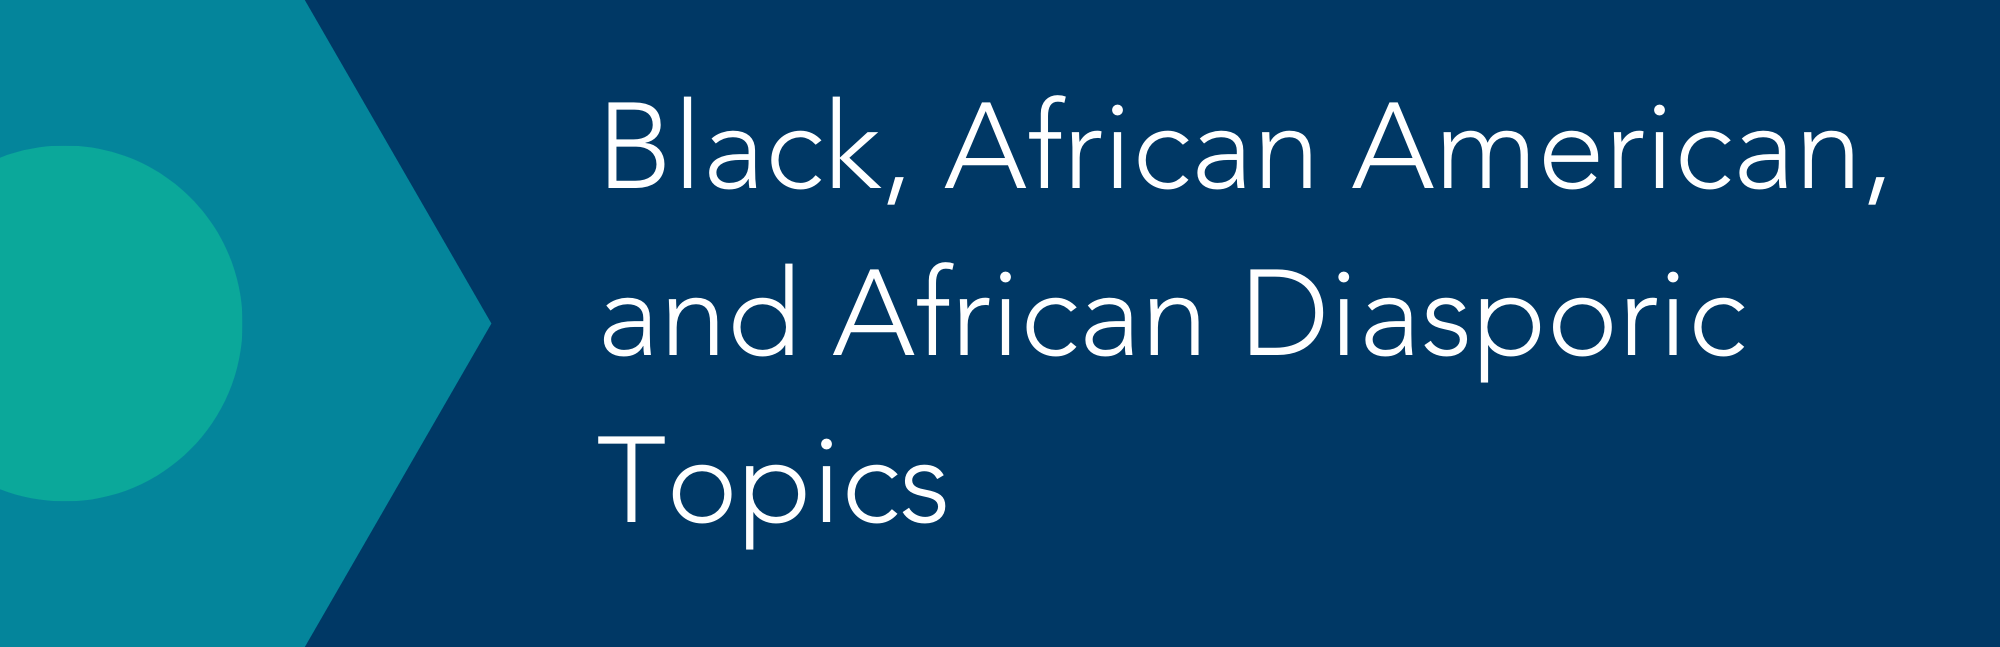 Black, African American, and African Diasporic Topics